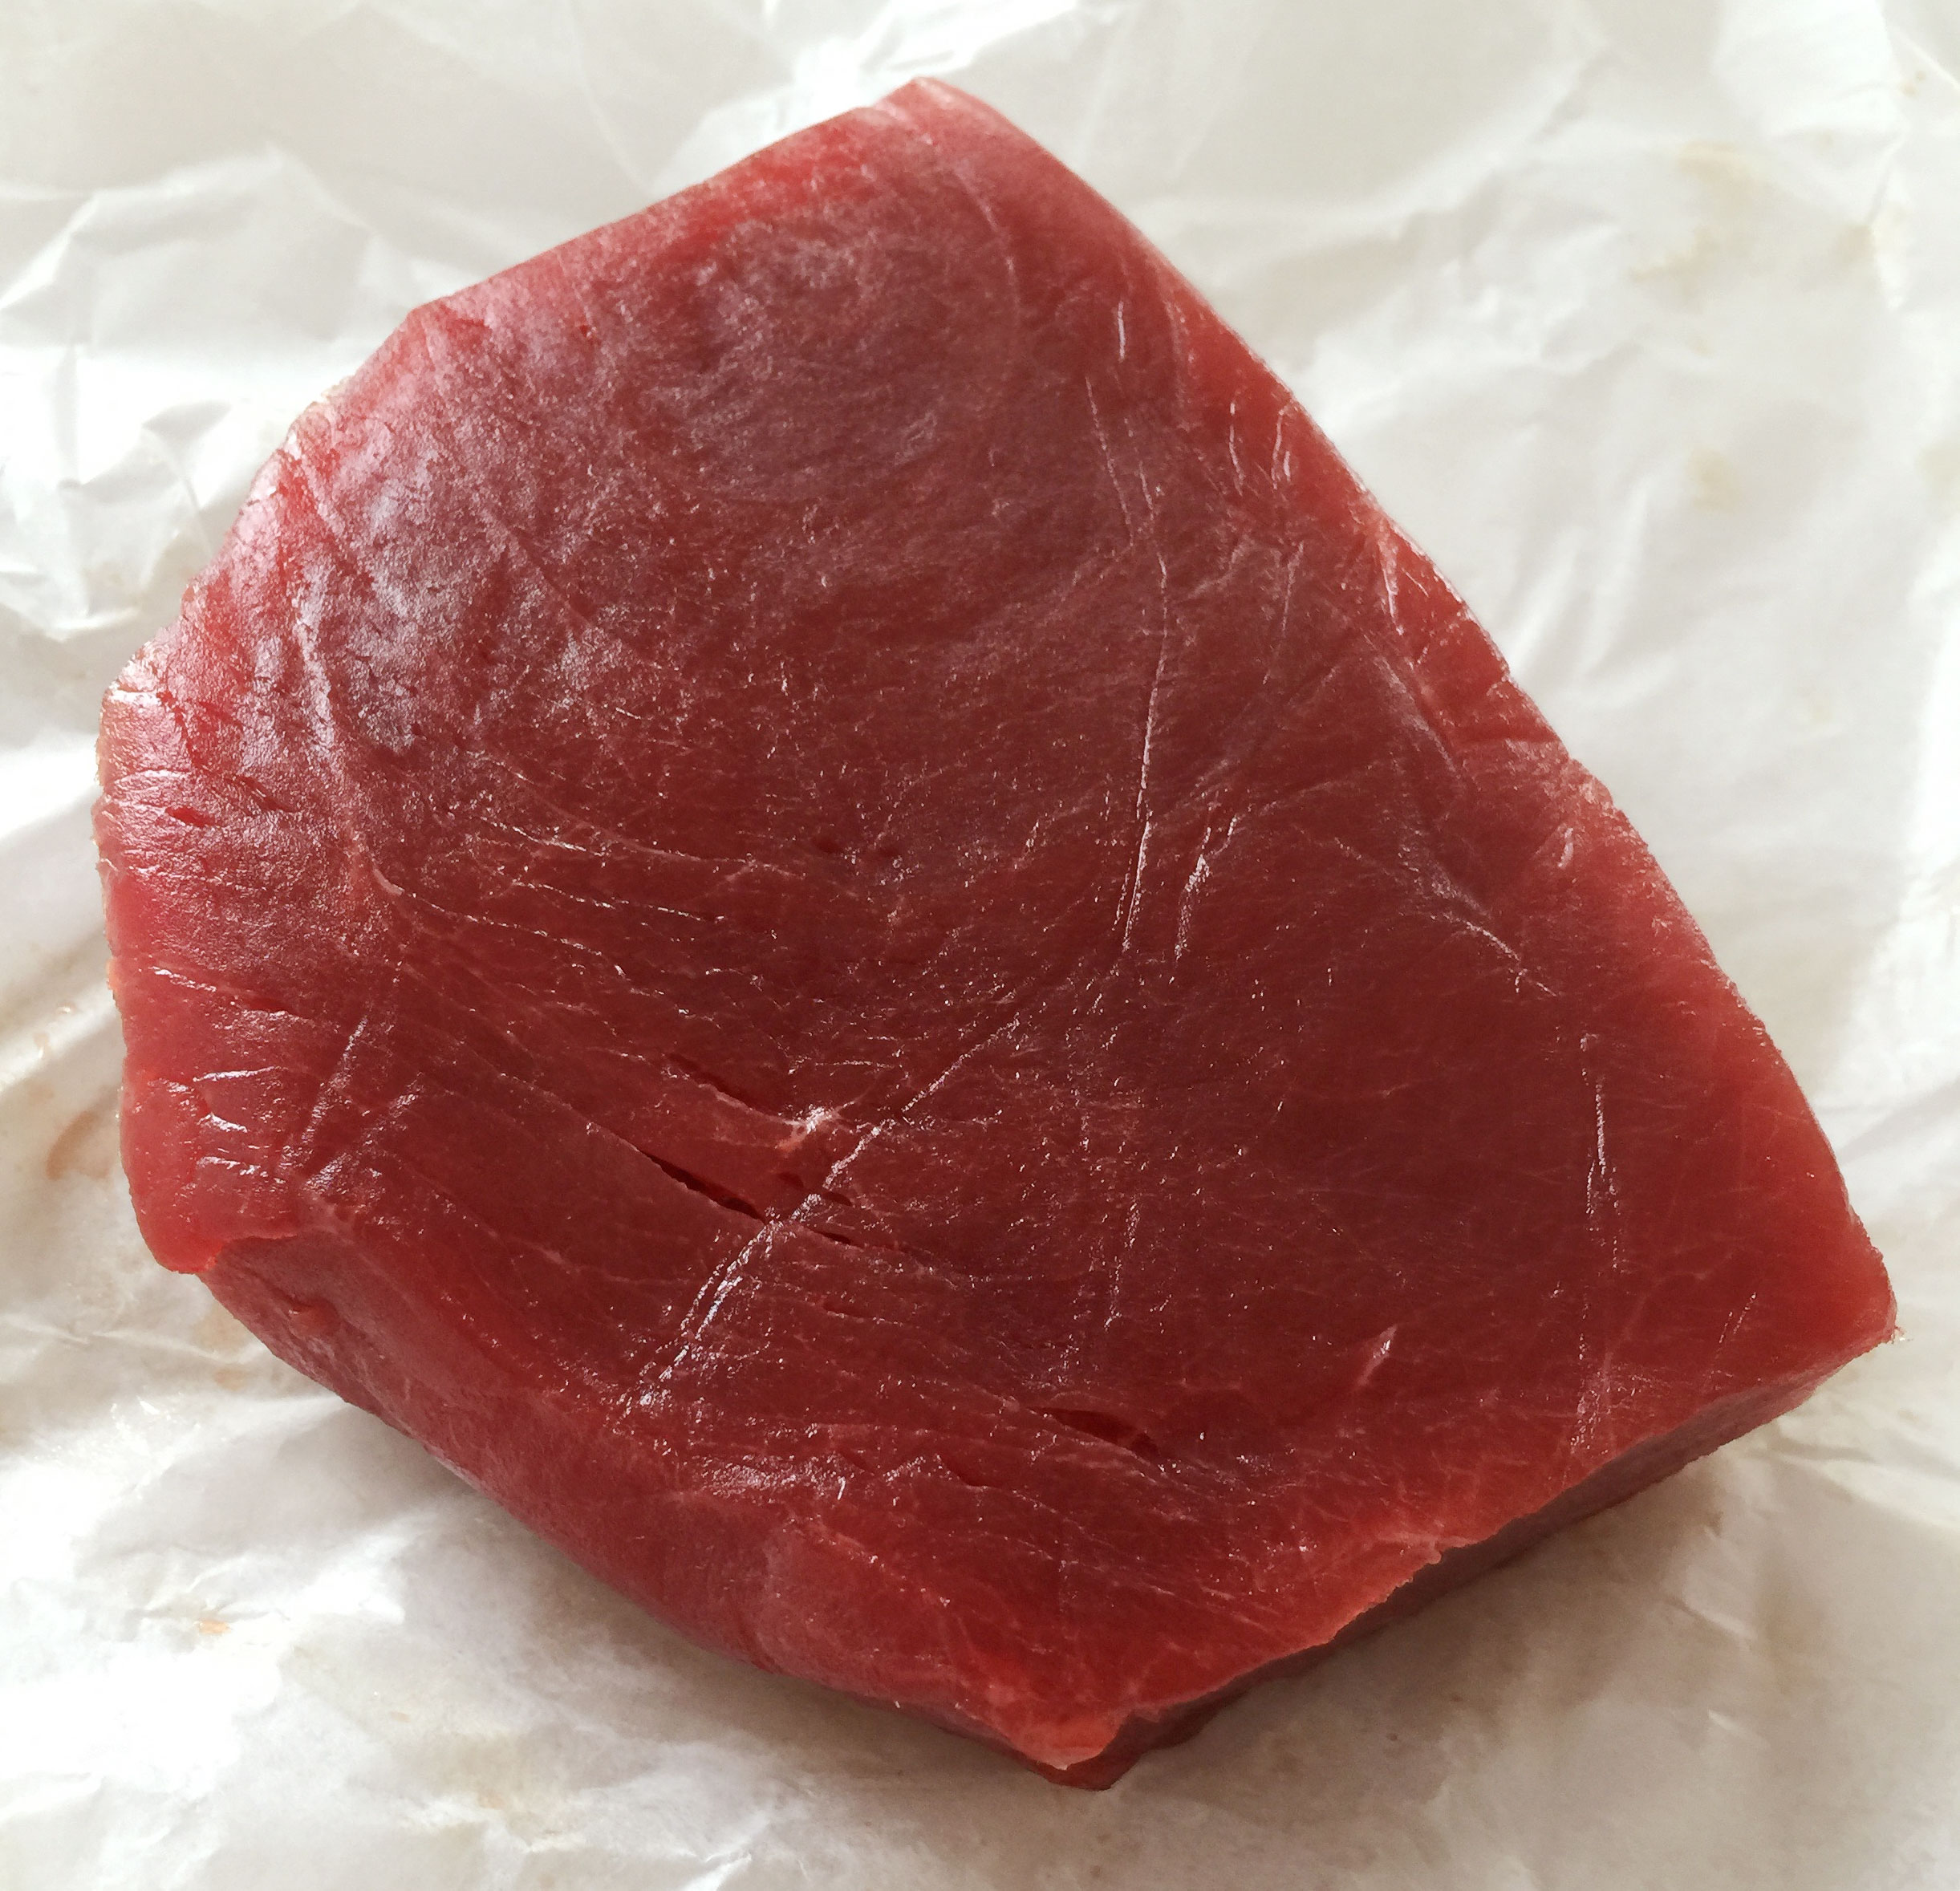 Bluefin tuna from Red's Best